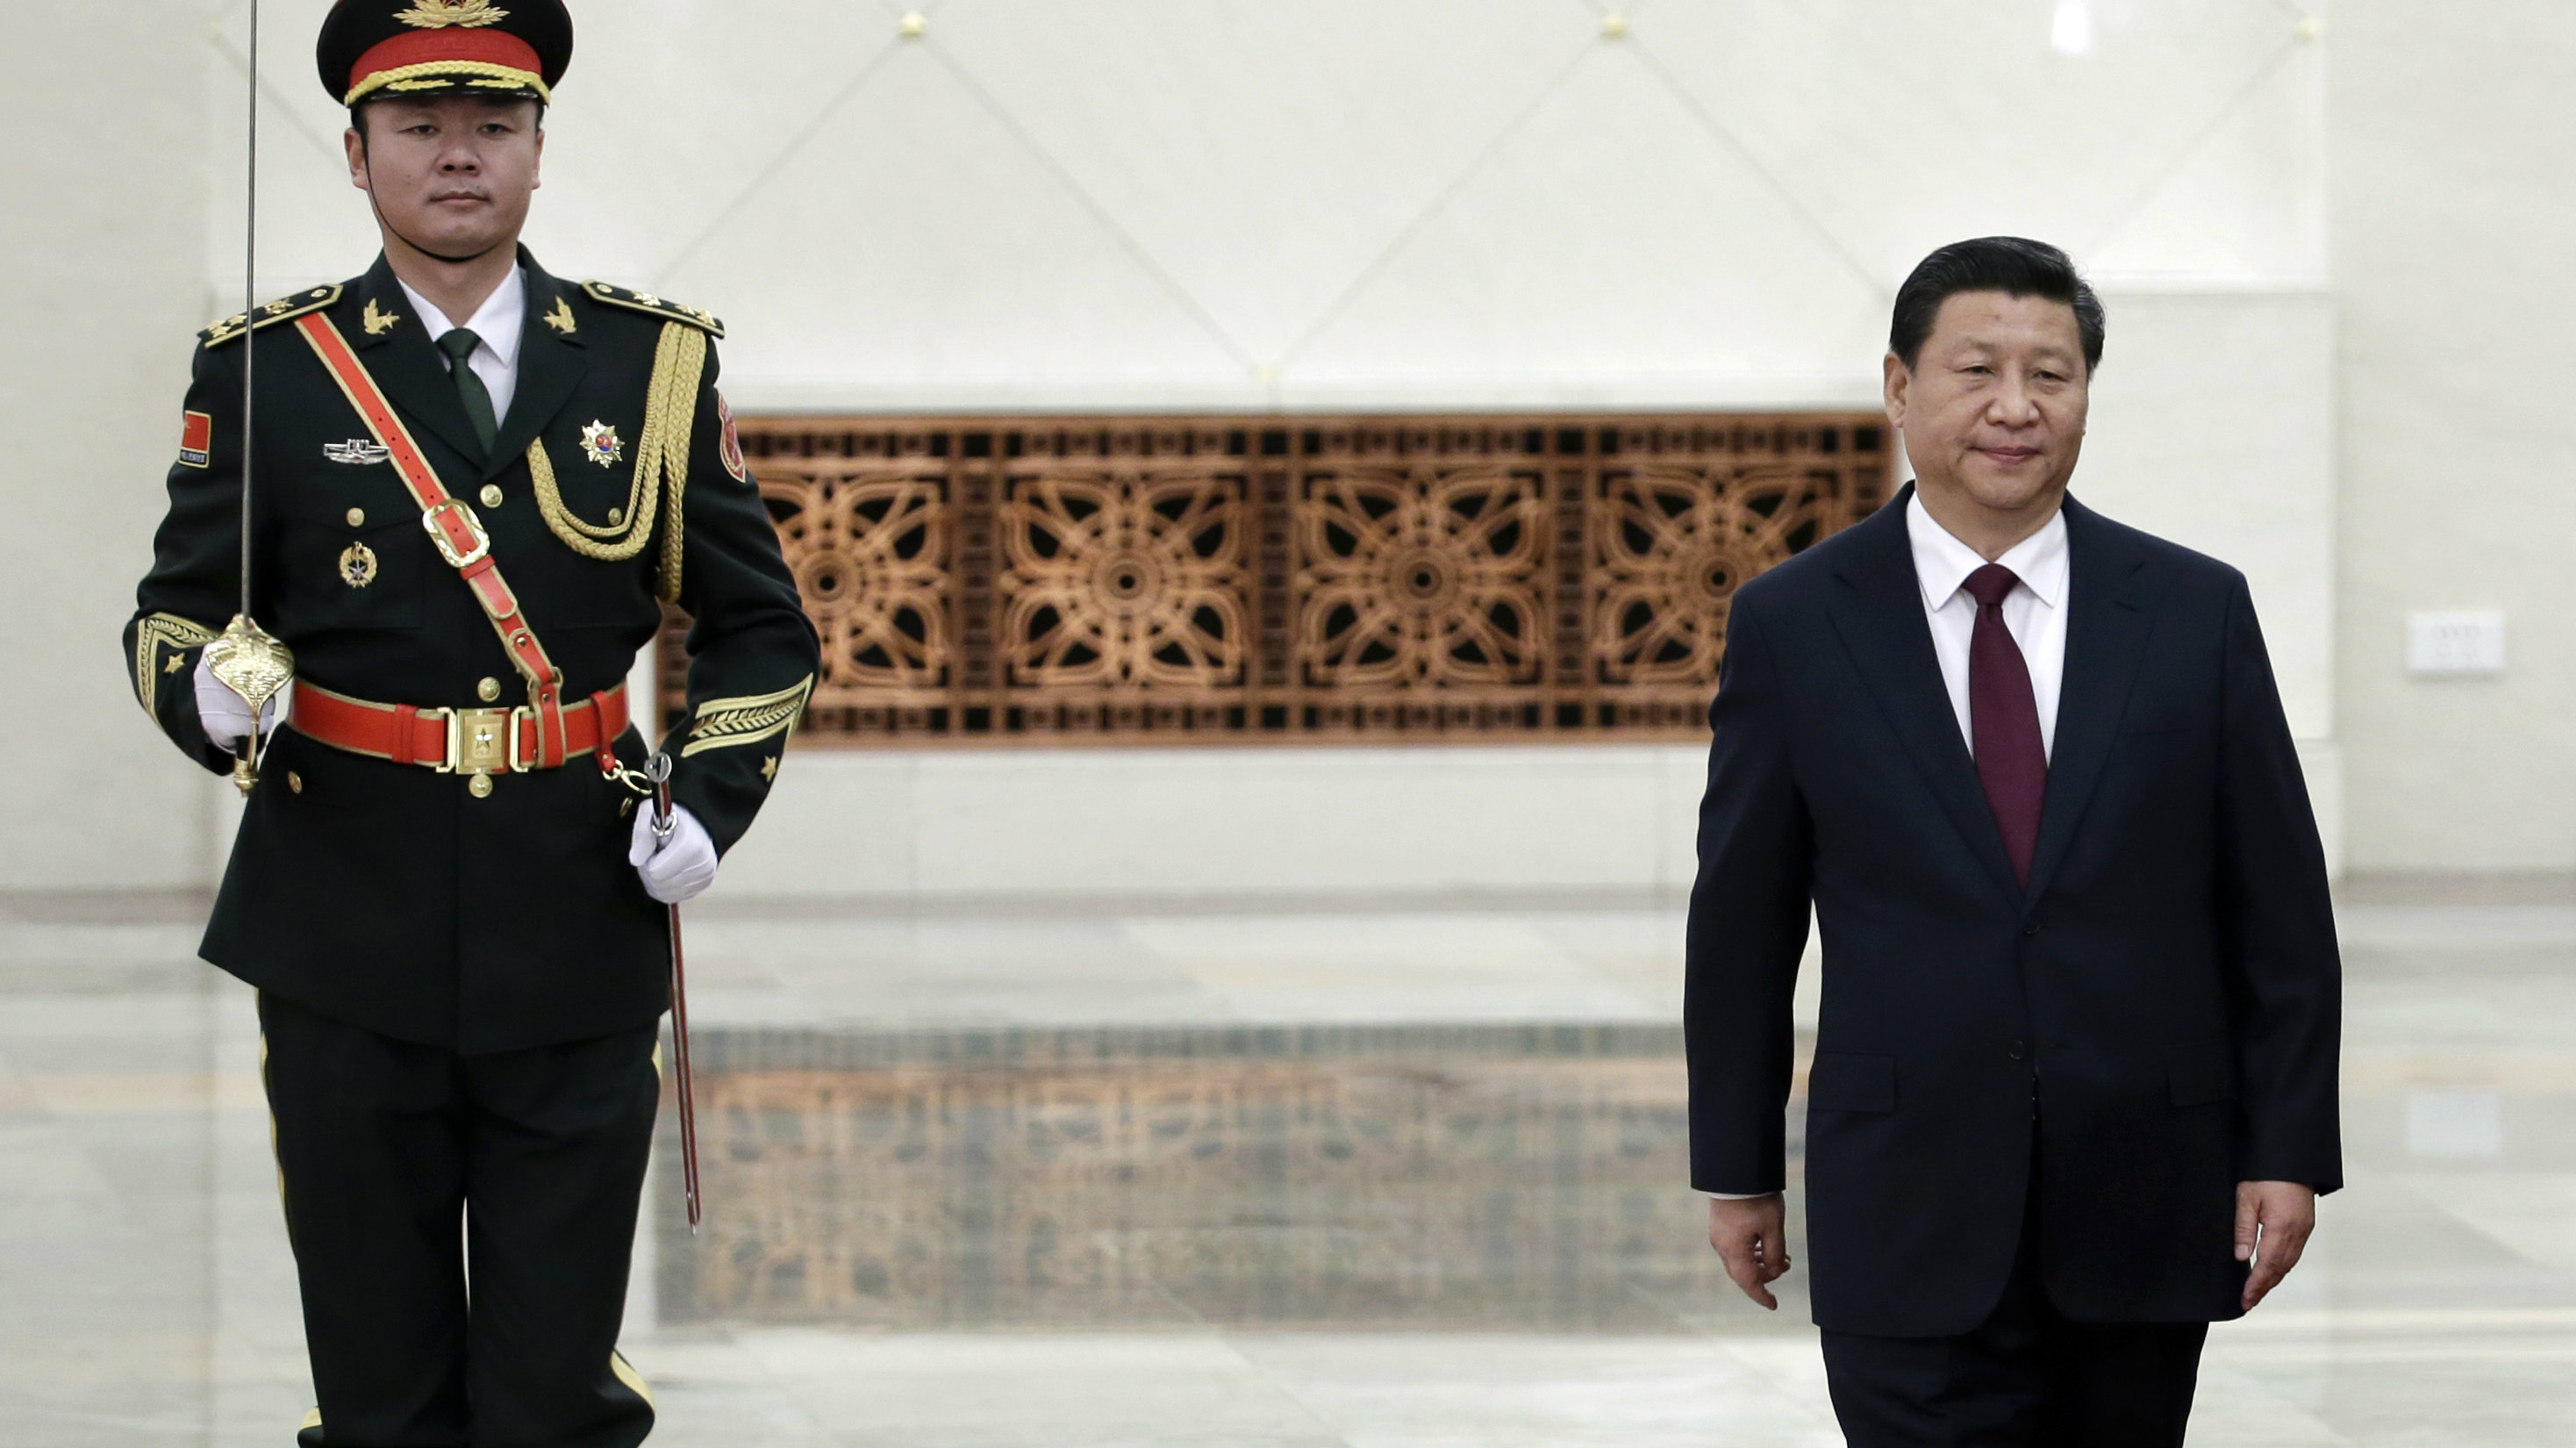 China's President Xi Jinping stands during a welcoming ceremony at the Great Hall of the People in Beijing, December 23, 2014. Picture taken December 23, 2014.